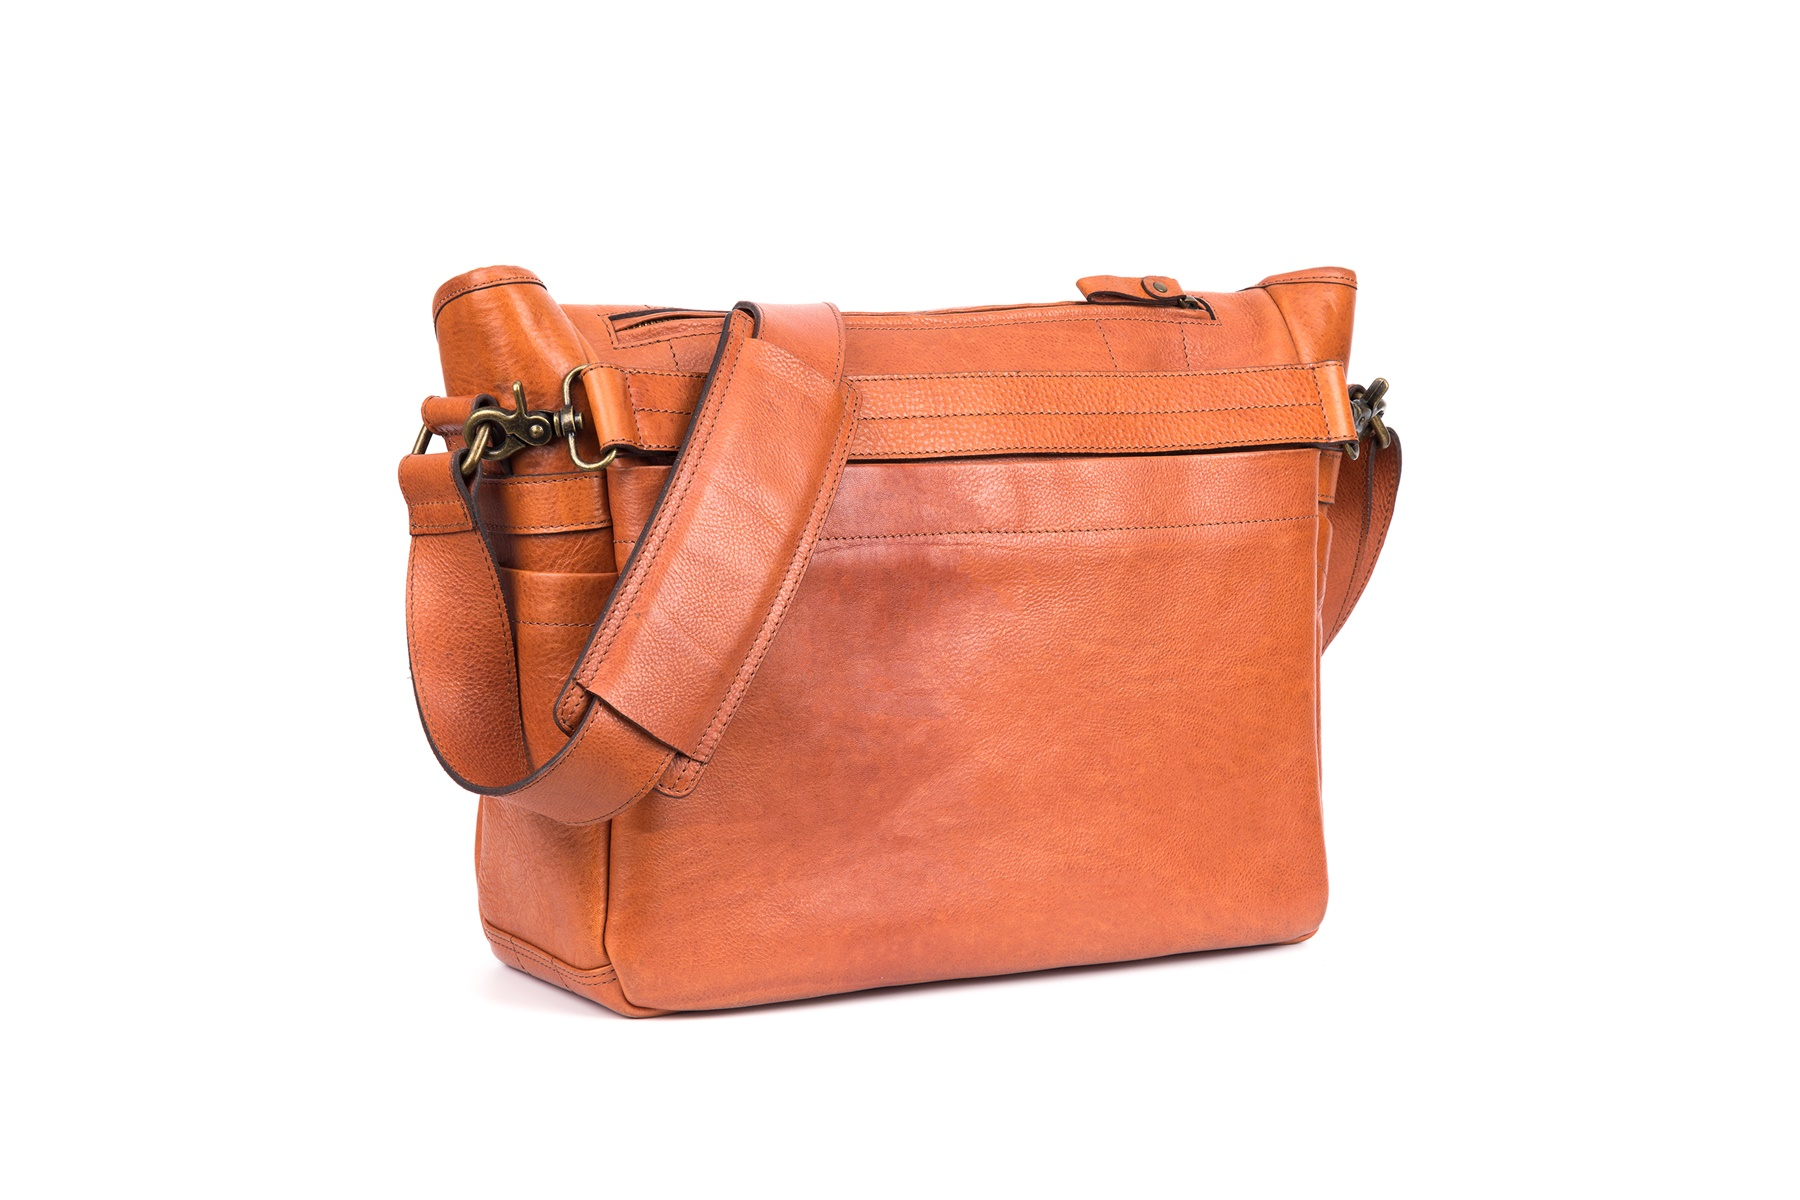 GF bags-cheap messenger bag | Messenger Bags | GF bags-1